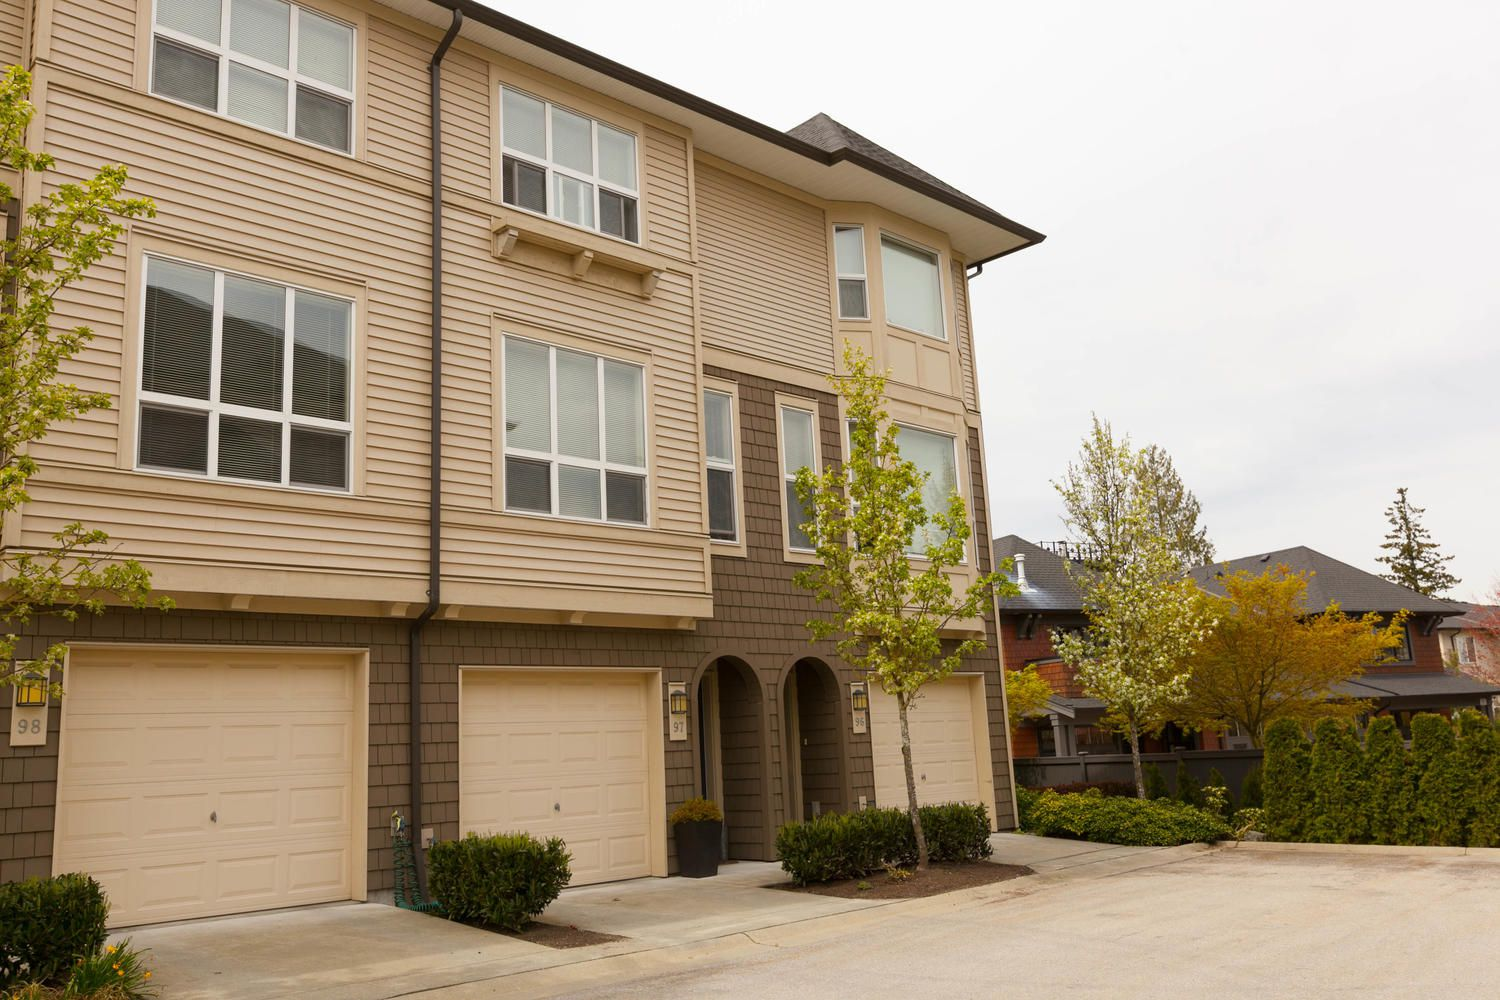 """Photo 44: Photos: 97 7938 209 Street in Langley: Willoughby Heights Townhouse for sale in """"Red Maple Park"""" : MLS®# R2260950"""